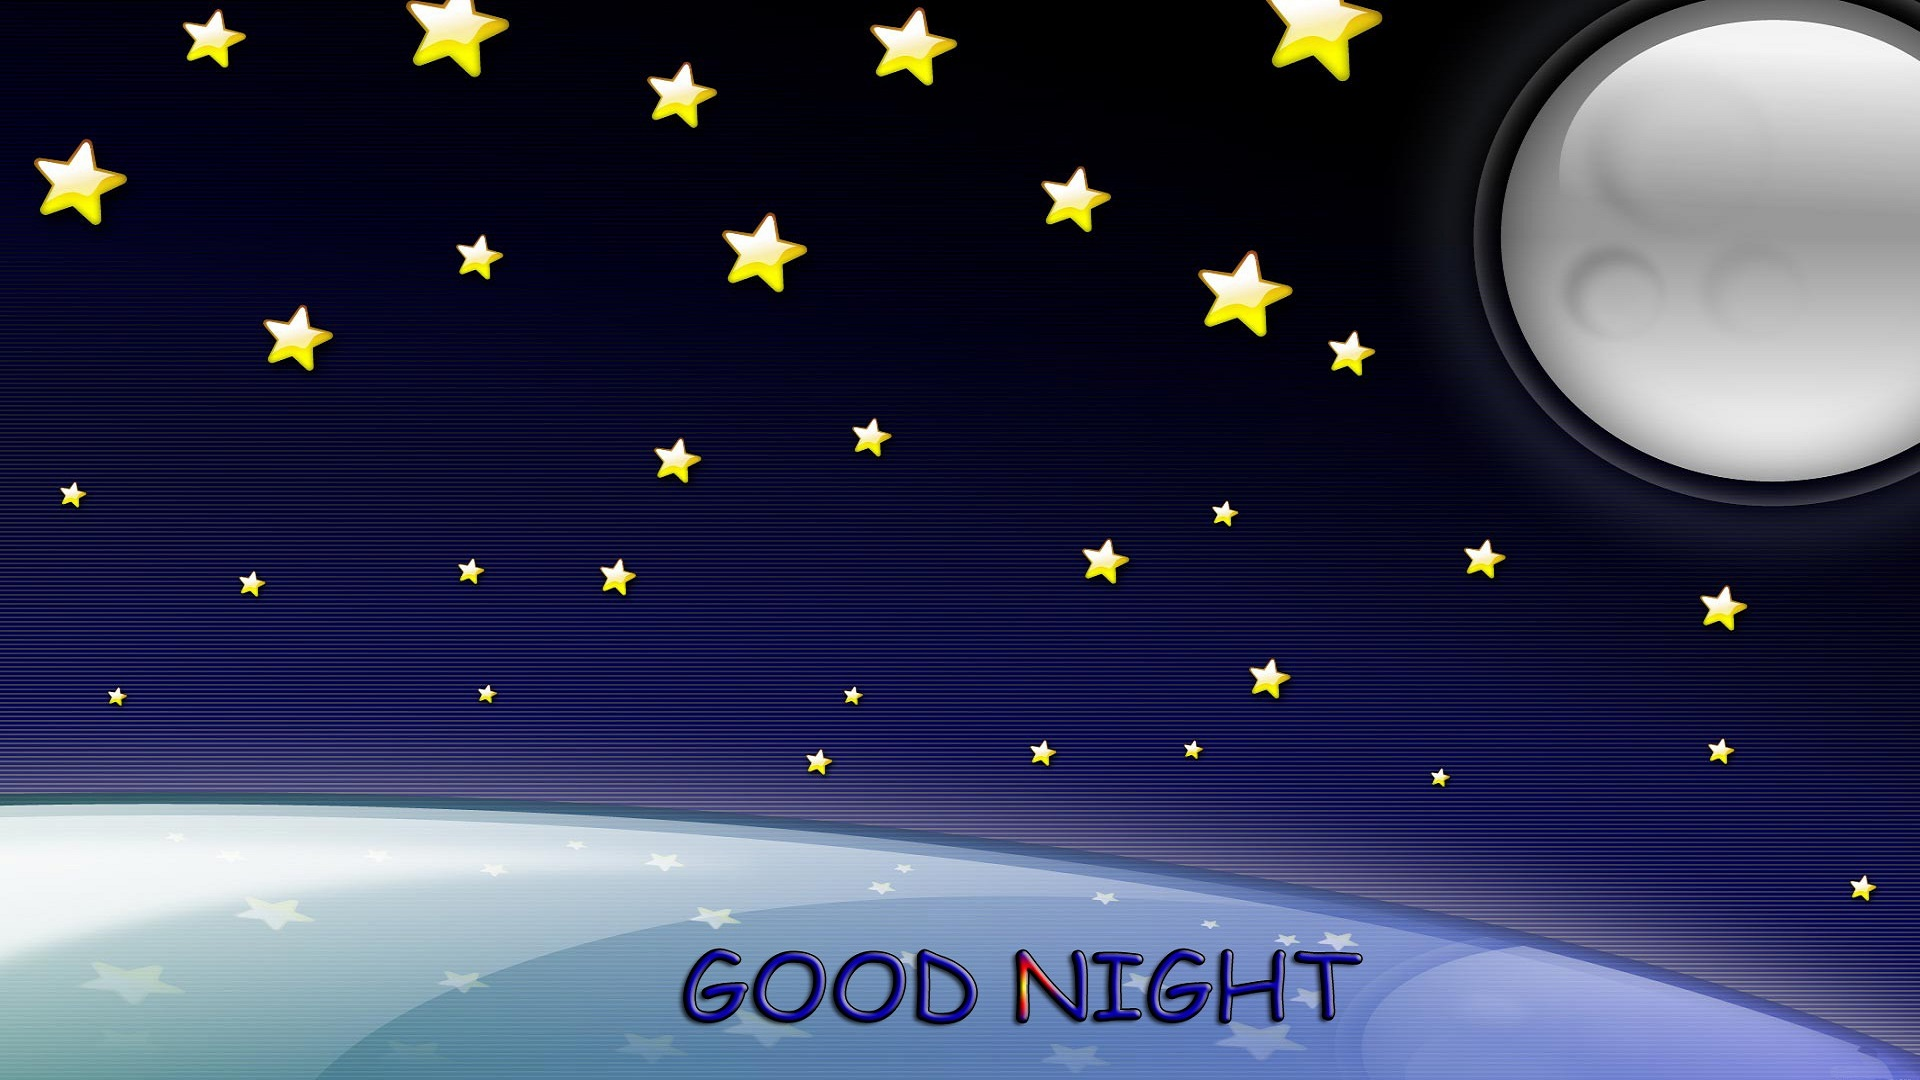 Hd wallpaper good night - Good Night Hd Wallpapers Free For Dwonloaded